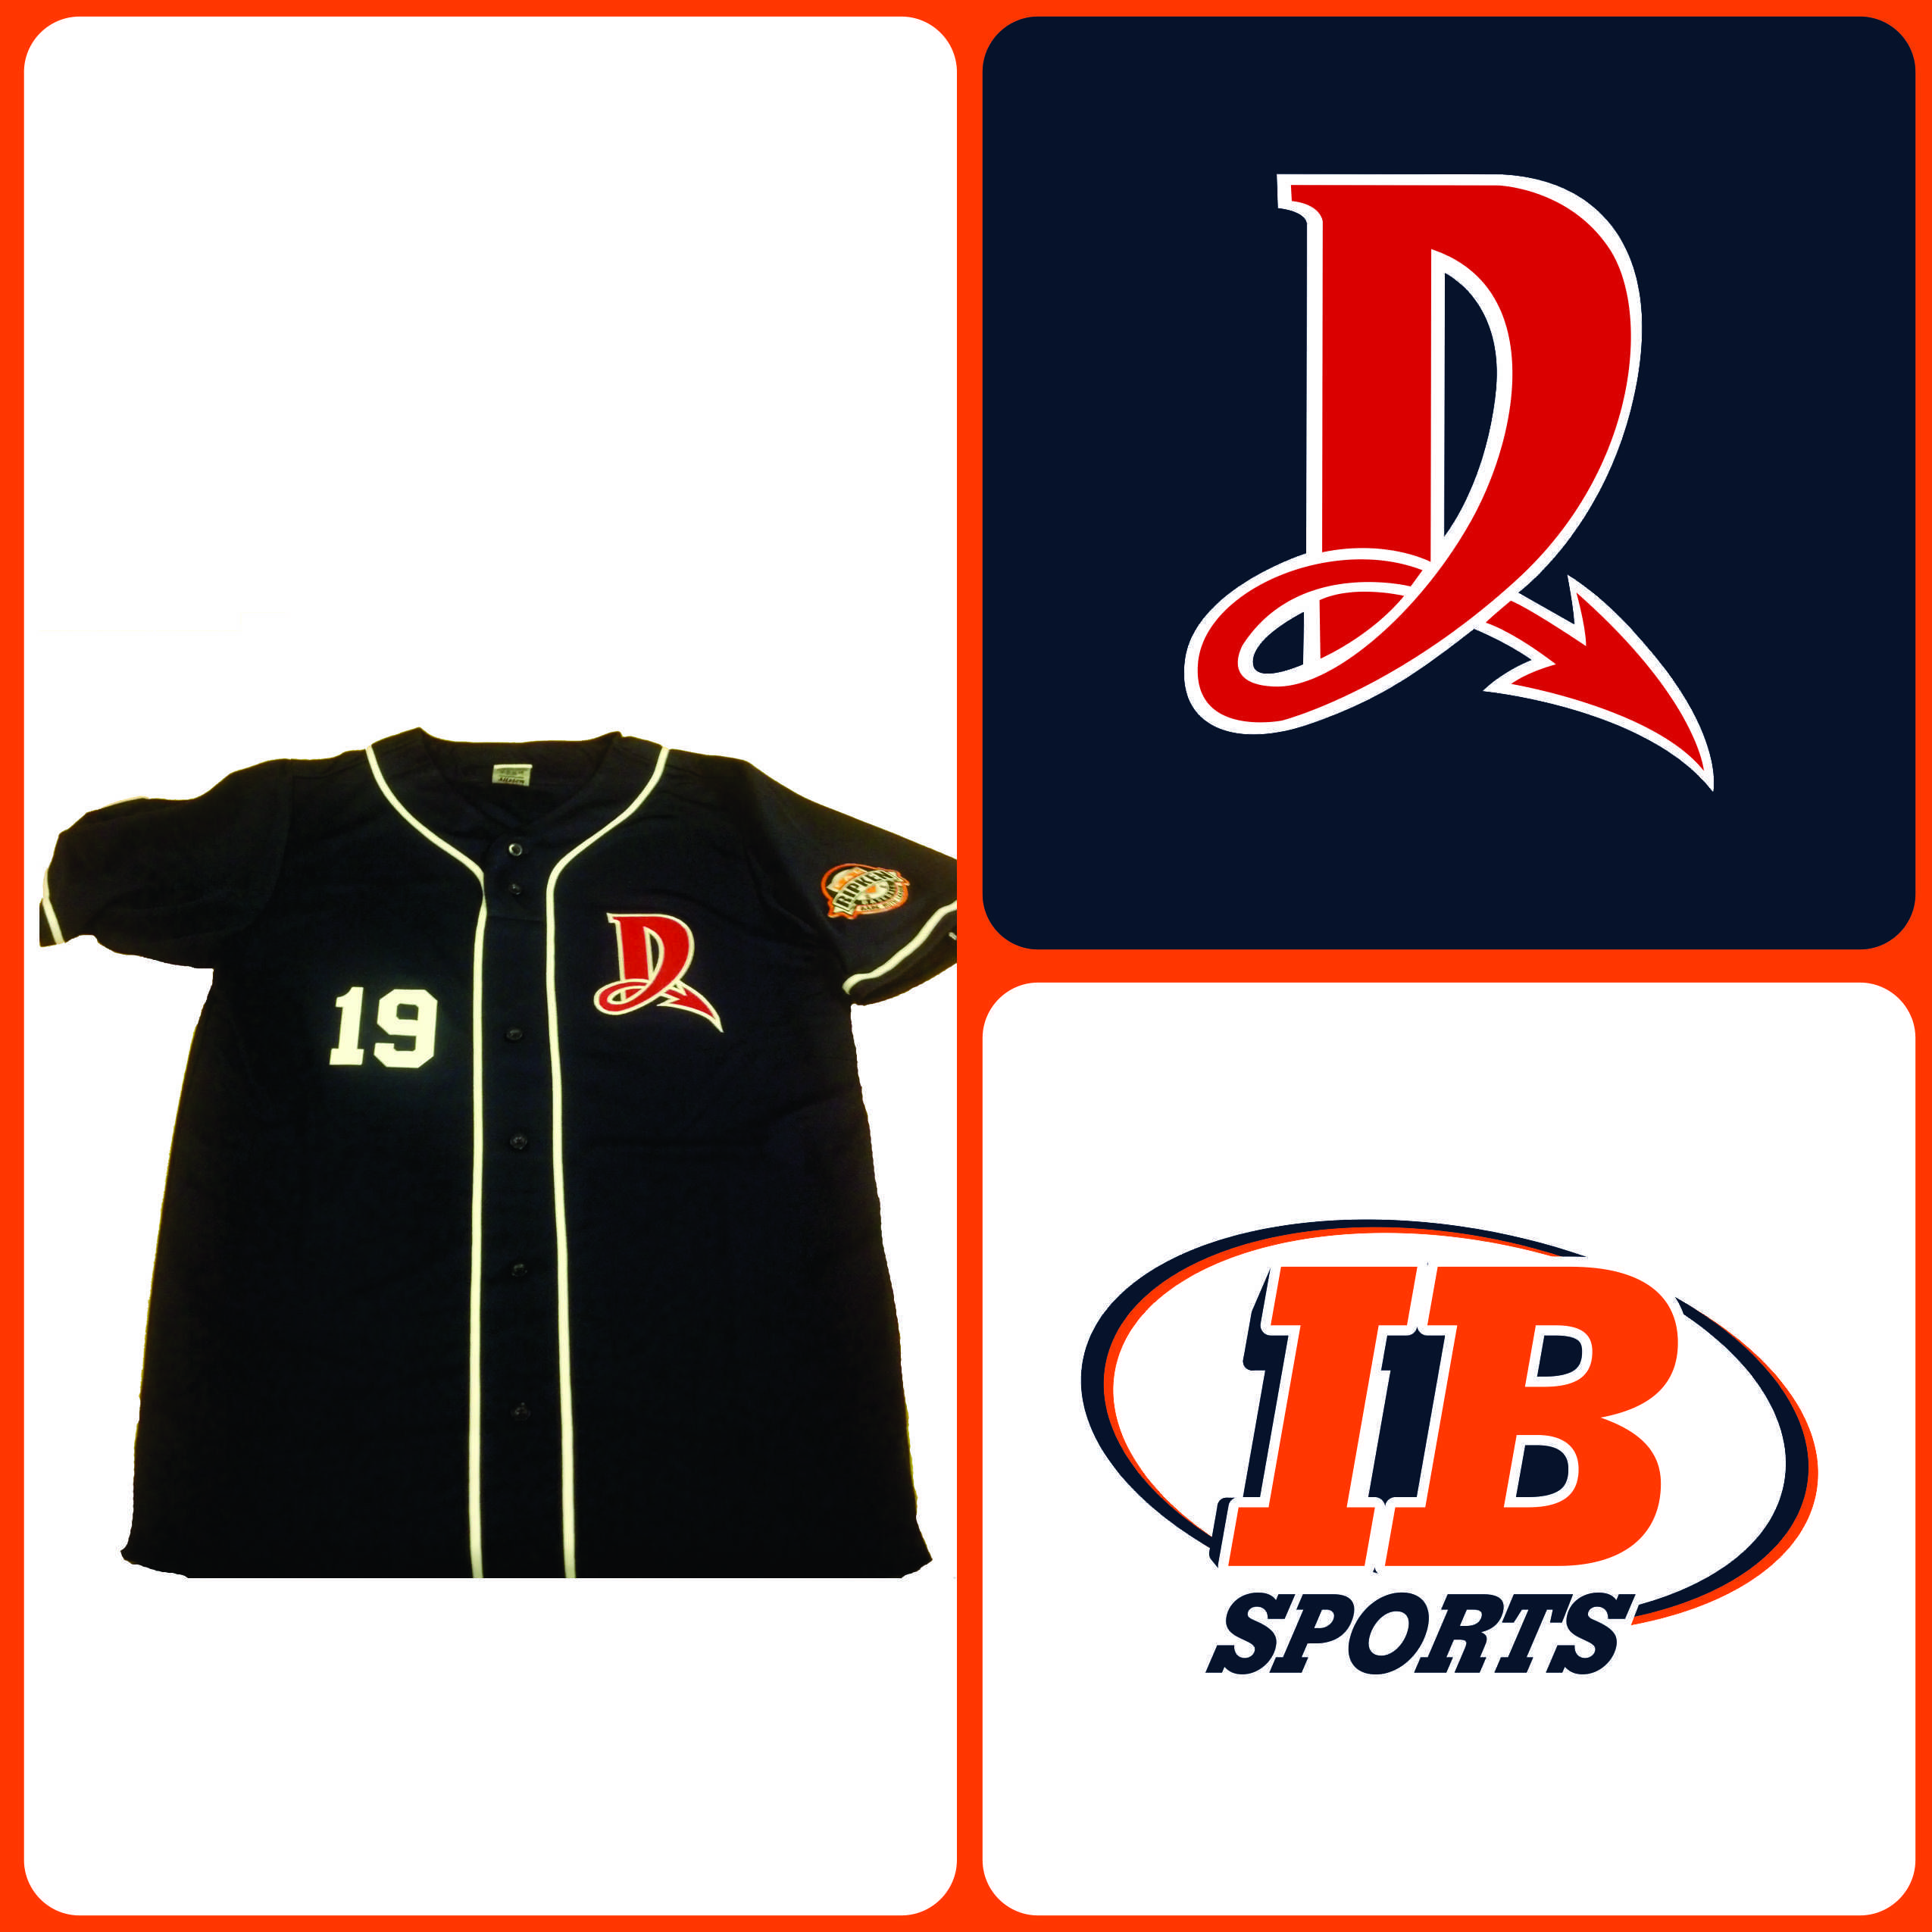 Dragons Baseball  #Baseball #CustomApparel #CustomSportswear #CustomerSportswear #DragonsBaseball #HighSchoolBaseball #IBSports #NorthernKentucky